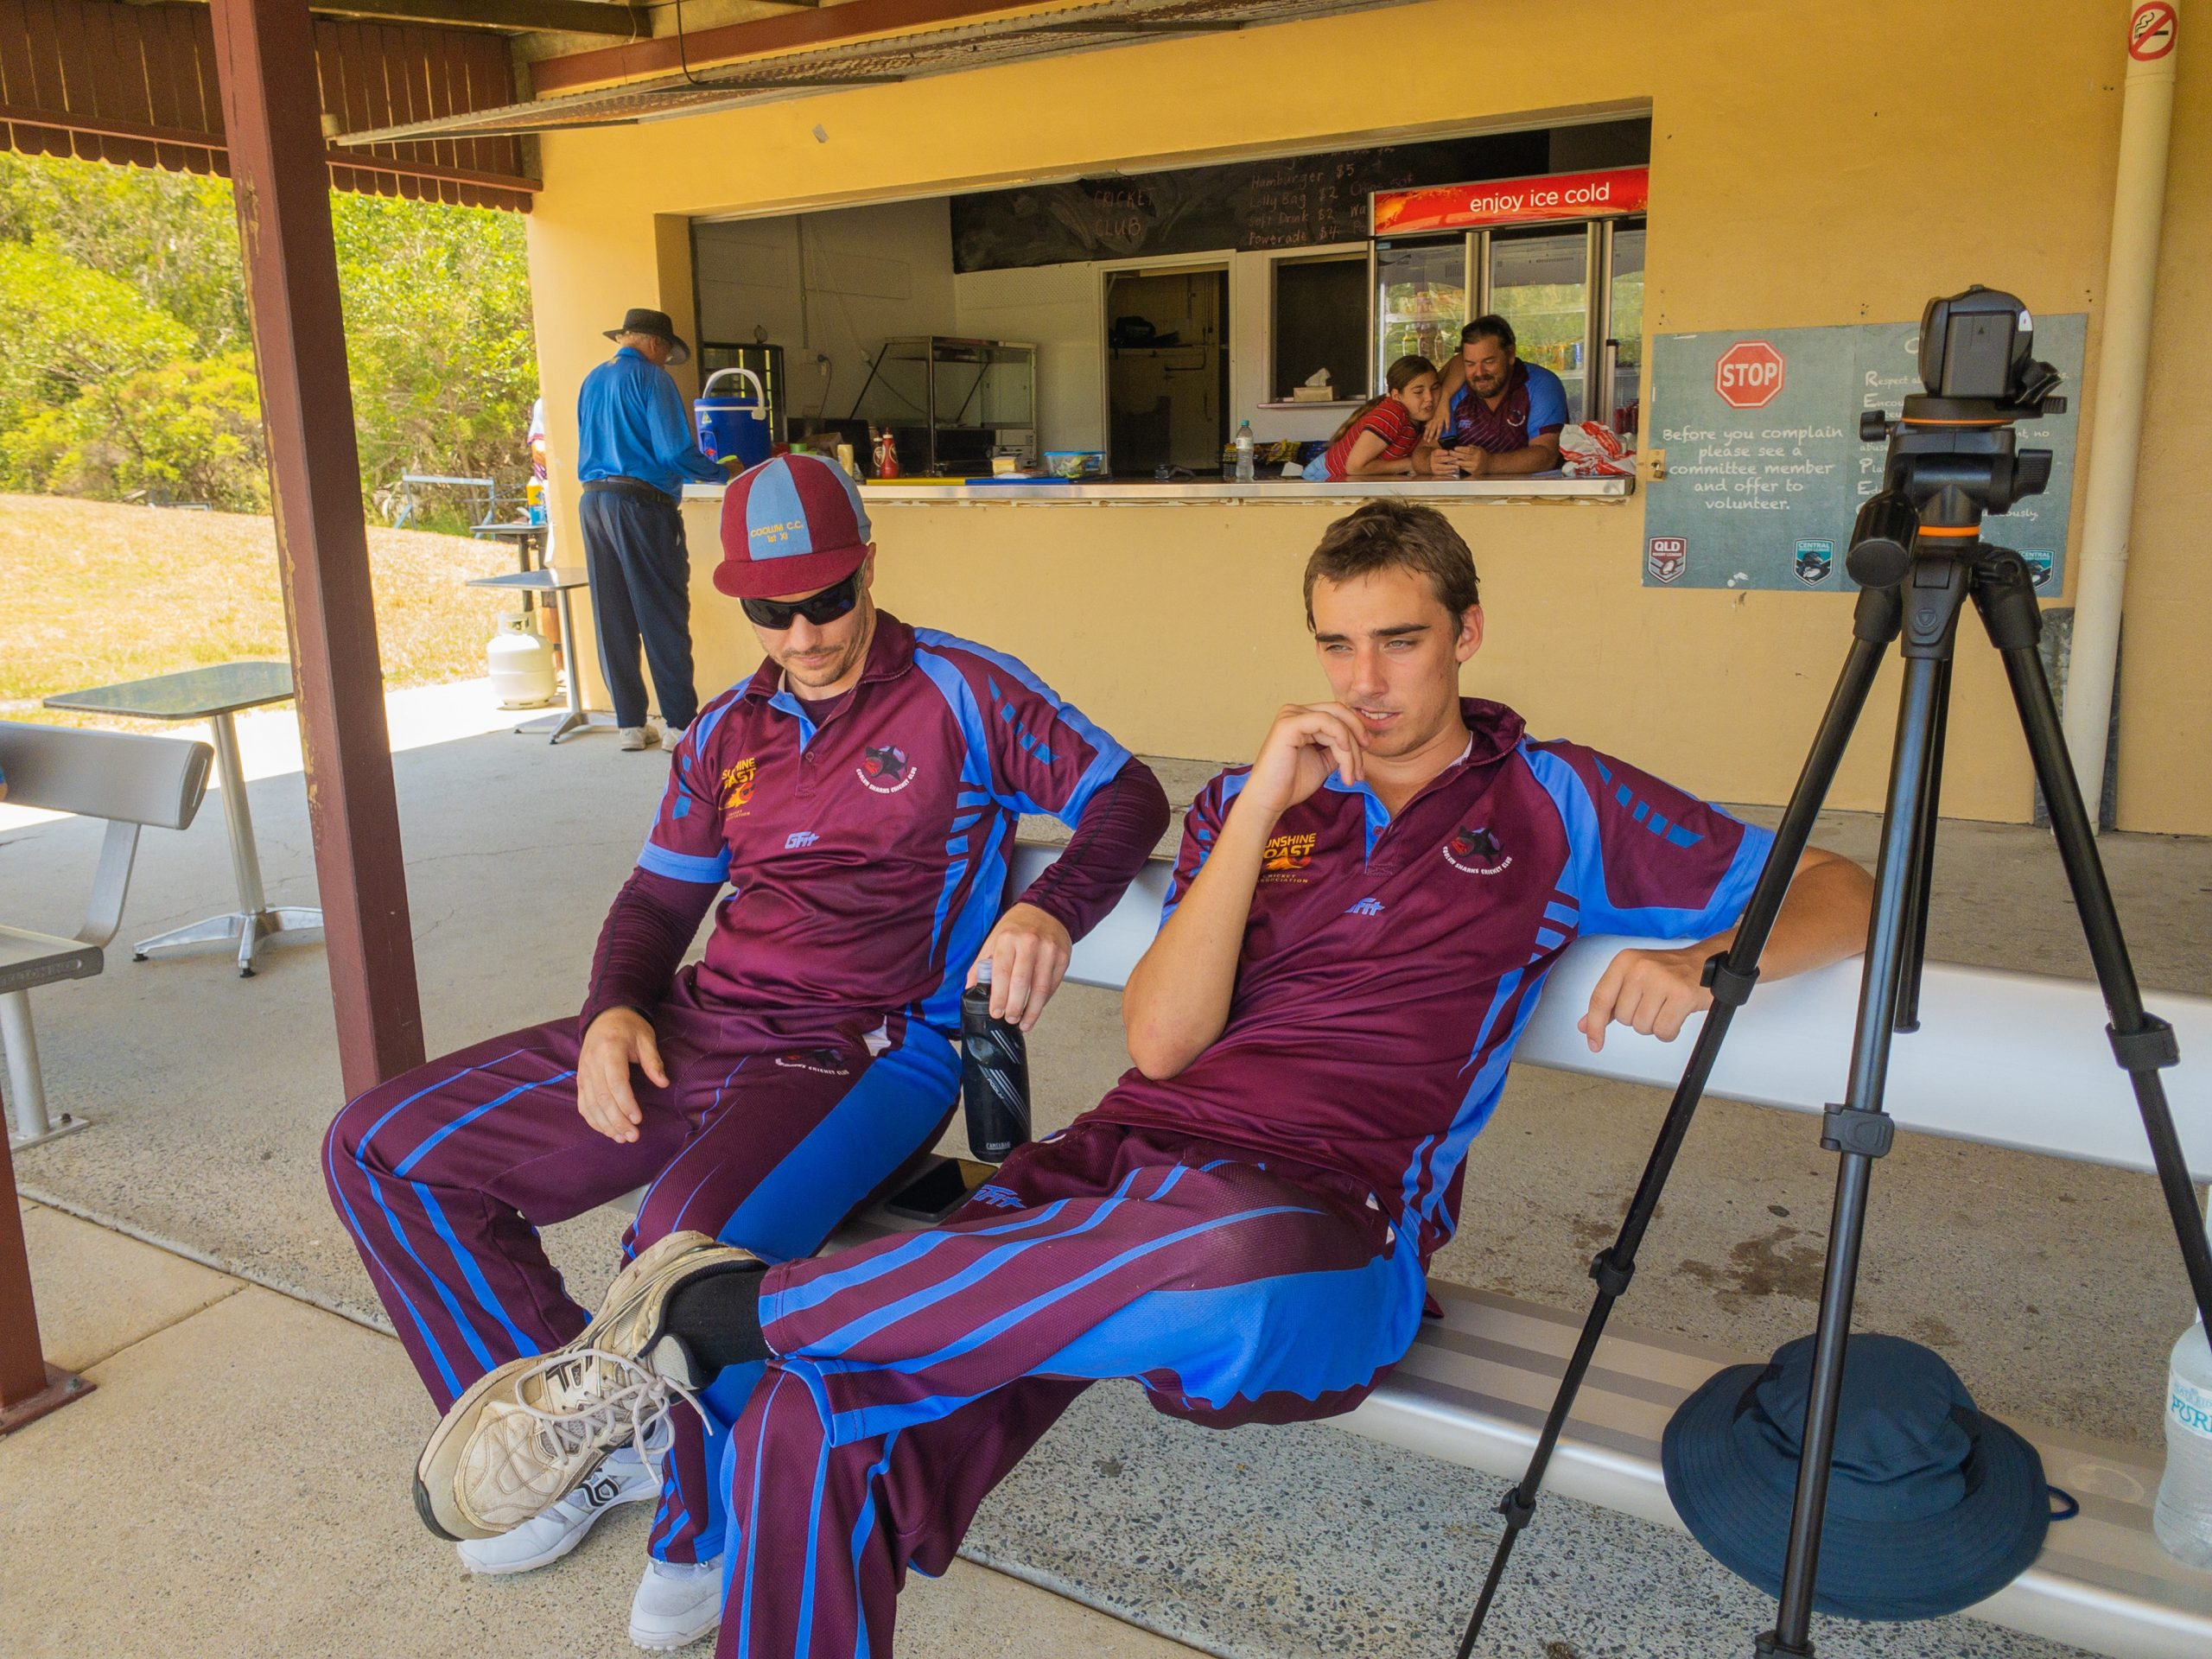 Coolum pick up first Twenty20 win, just miss semis in that format